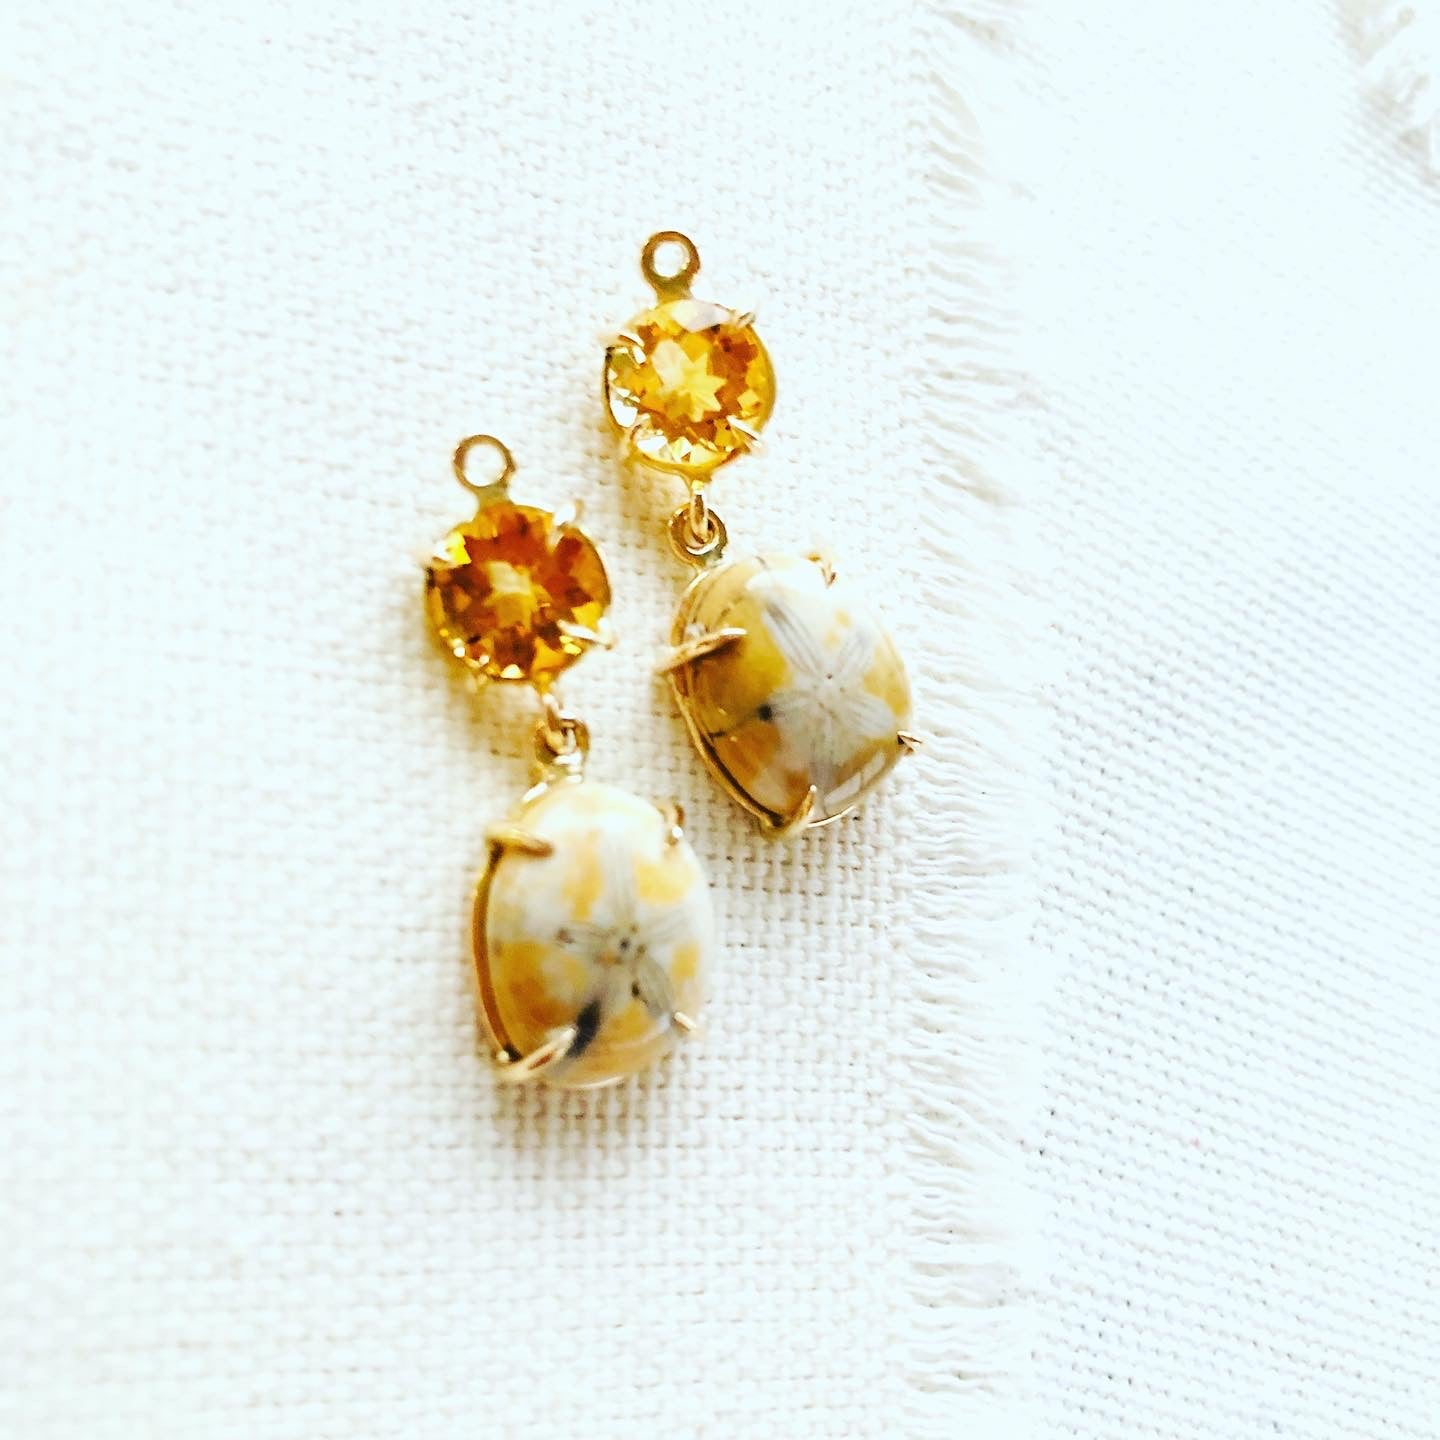 Sea urchin earrings paired with citrine and set in 14kt gold.  These fossilized sea urchin earrings make a beautiful long lasting souvenir from Hawaii.